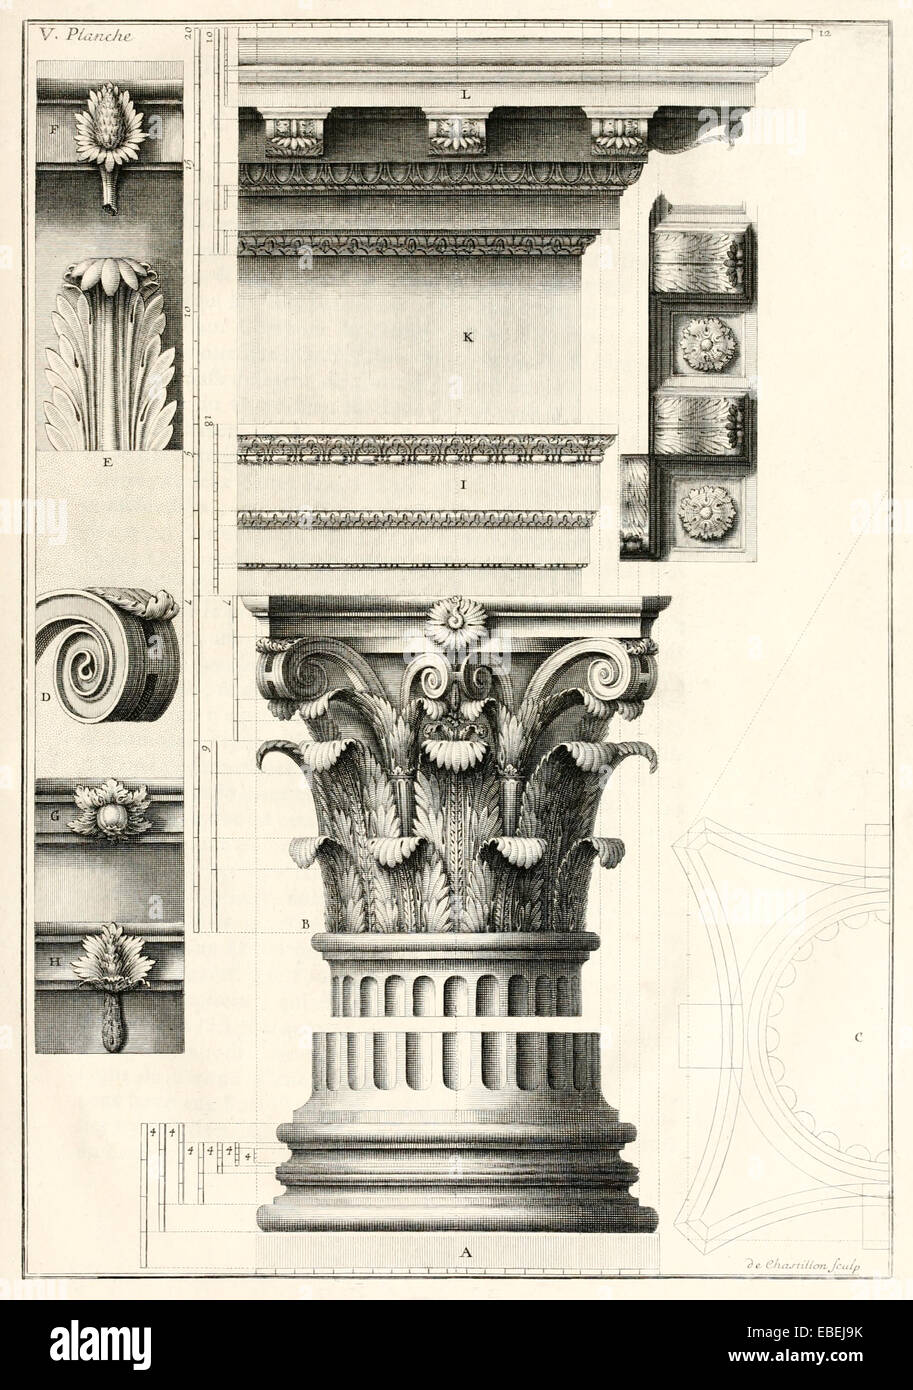 Corinthian order column by Claude Perrault, French Renaissance architect illustration. See description for more - Stock Image